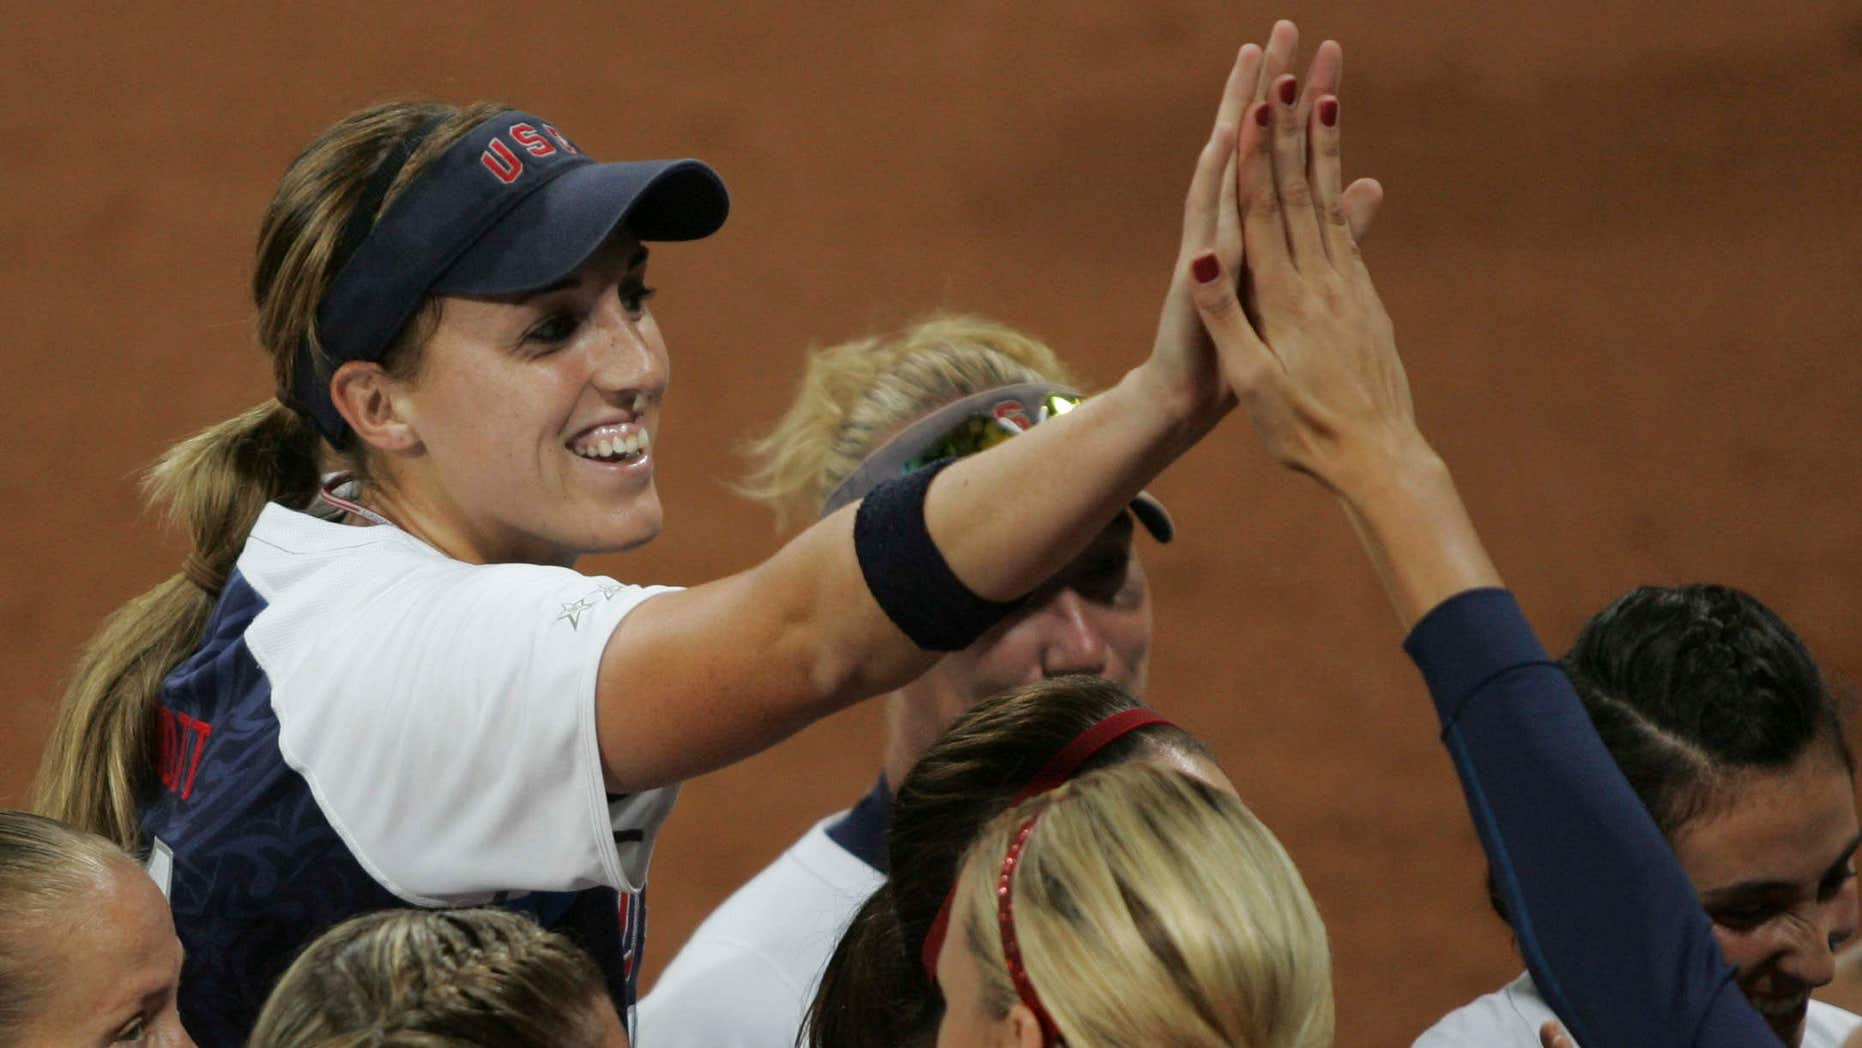 Aug. 17, 2008: Monica Abbott (L) of the U.S. celebrates after pitching a no-hitter against the Netherlands during their women's preliminaries softball game at the Beijing 2008 Olympic Games.